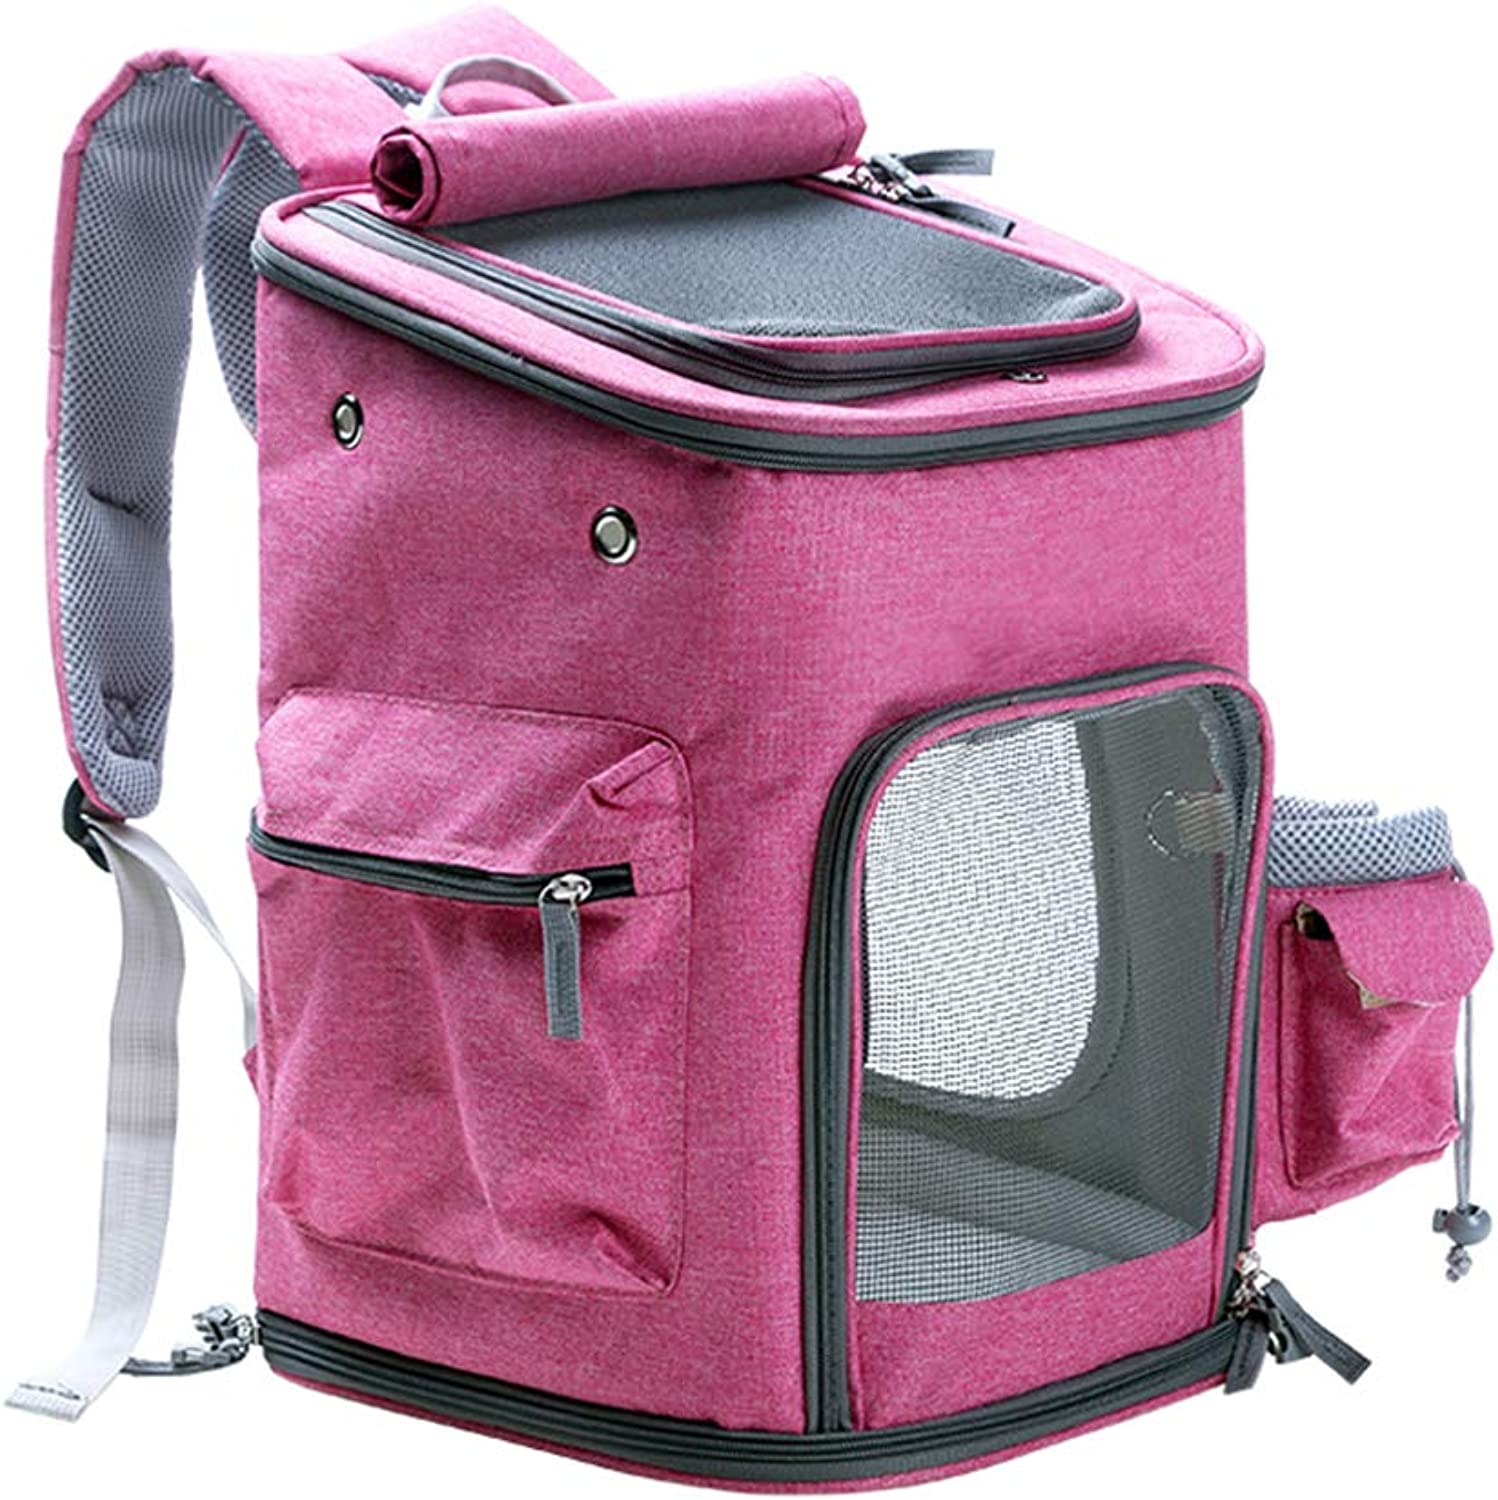 JYKOO Pet Carrier Backpack, Airline Approved Soft Sided Pet Carrier Small Dogs Cats Up To 20Lbs Hiking & Outdoor Use